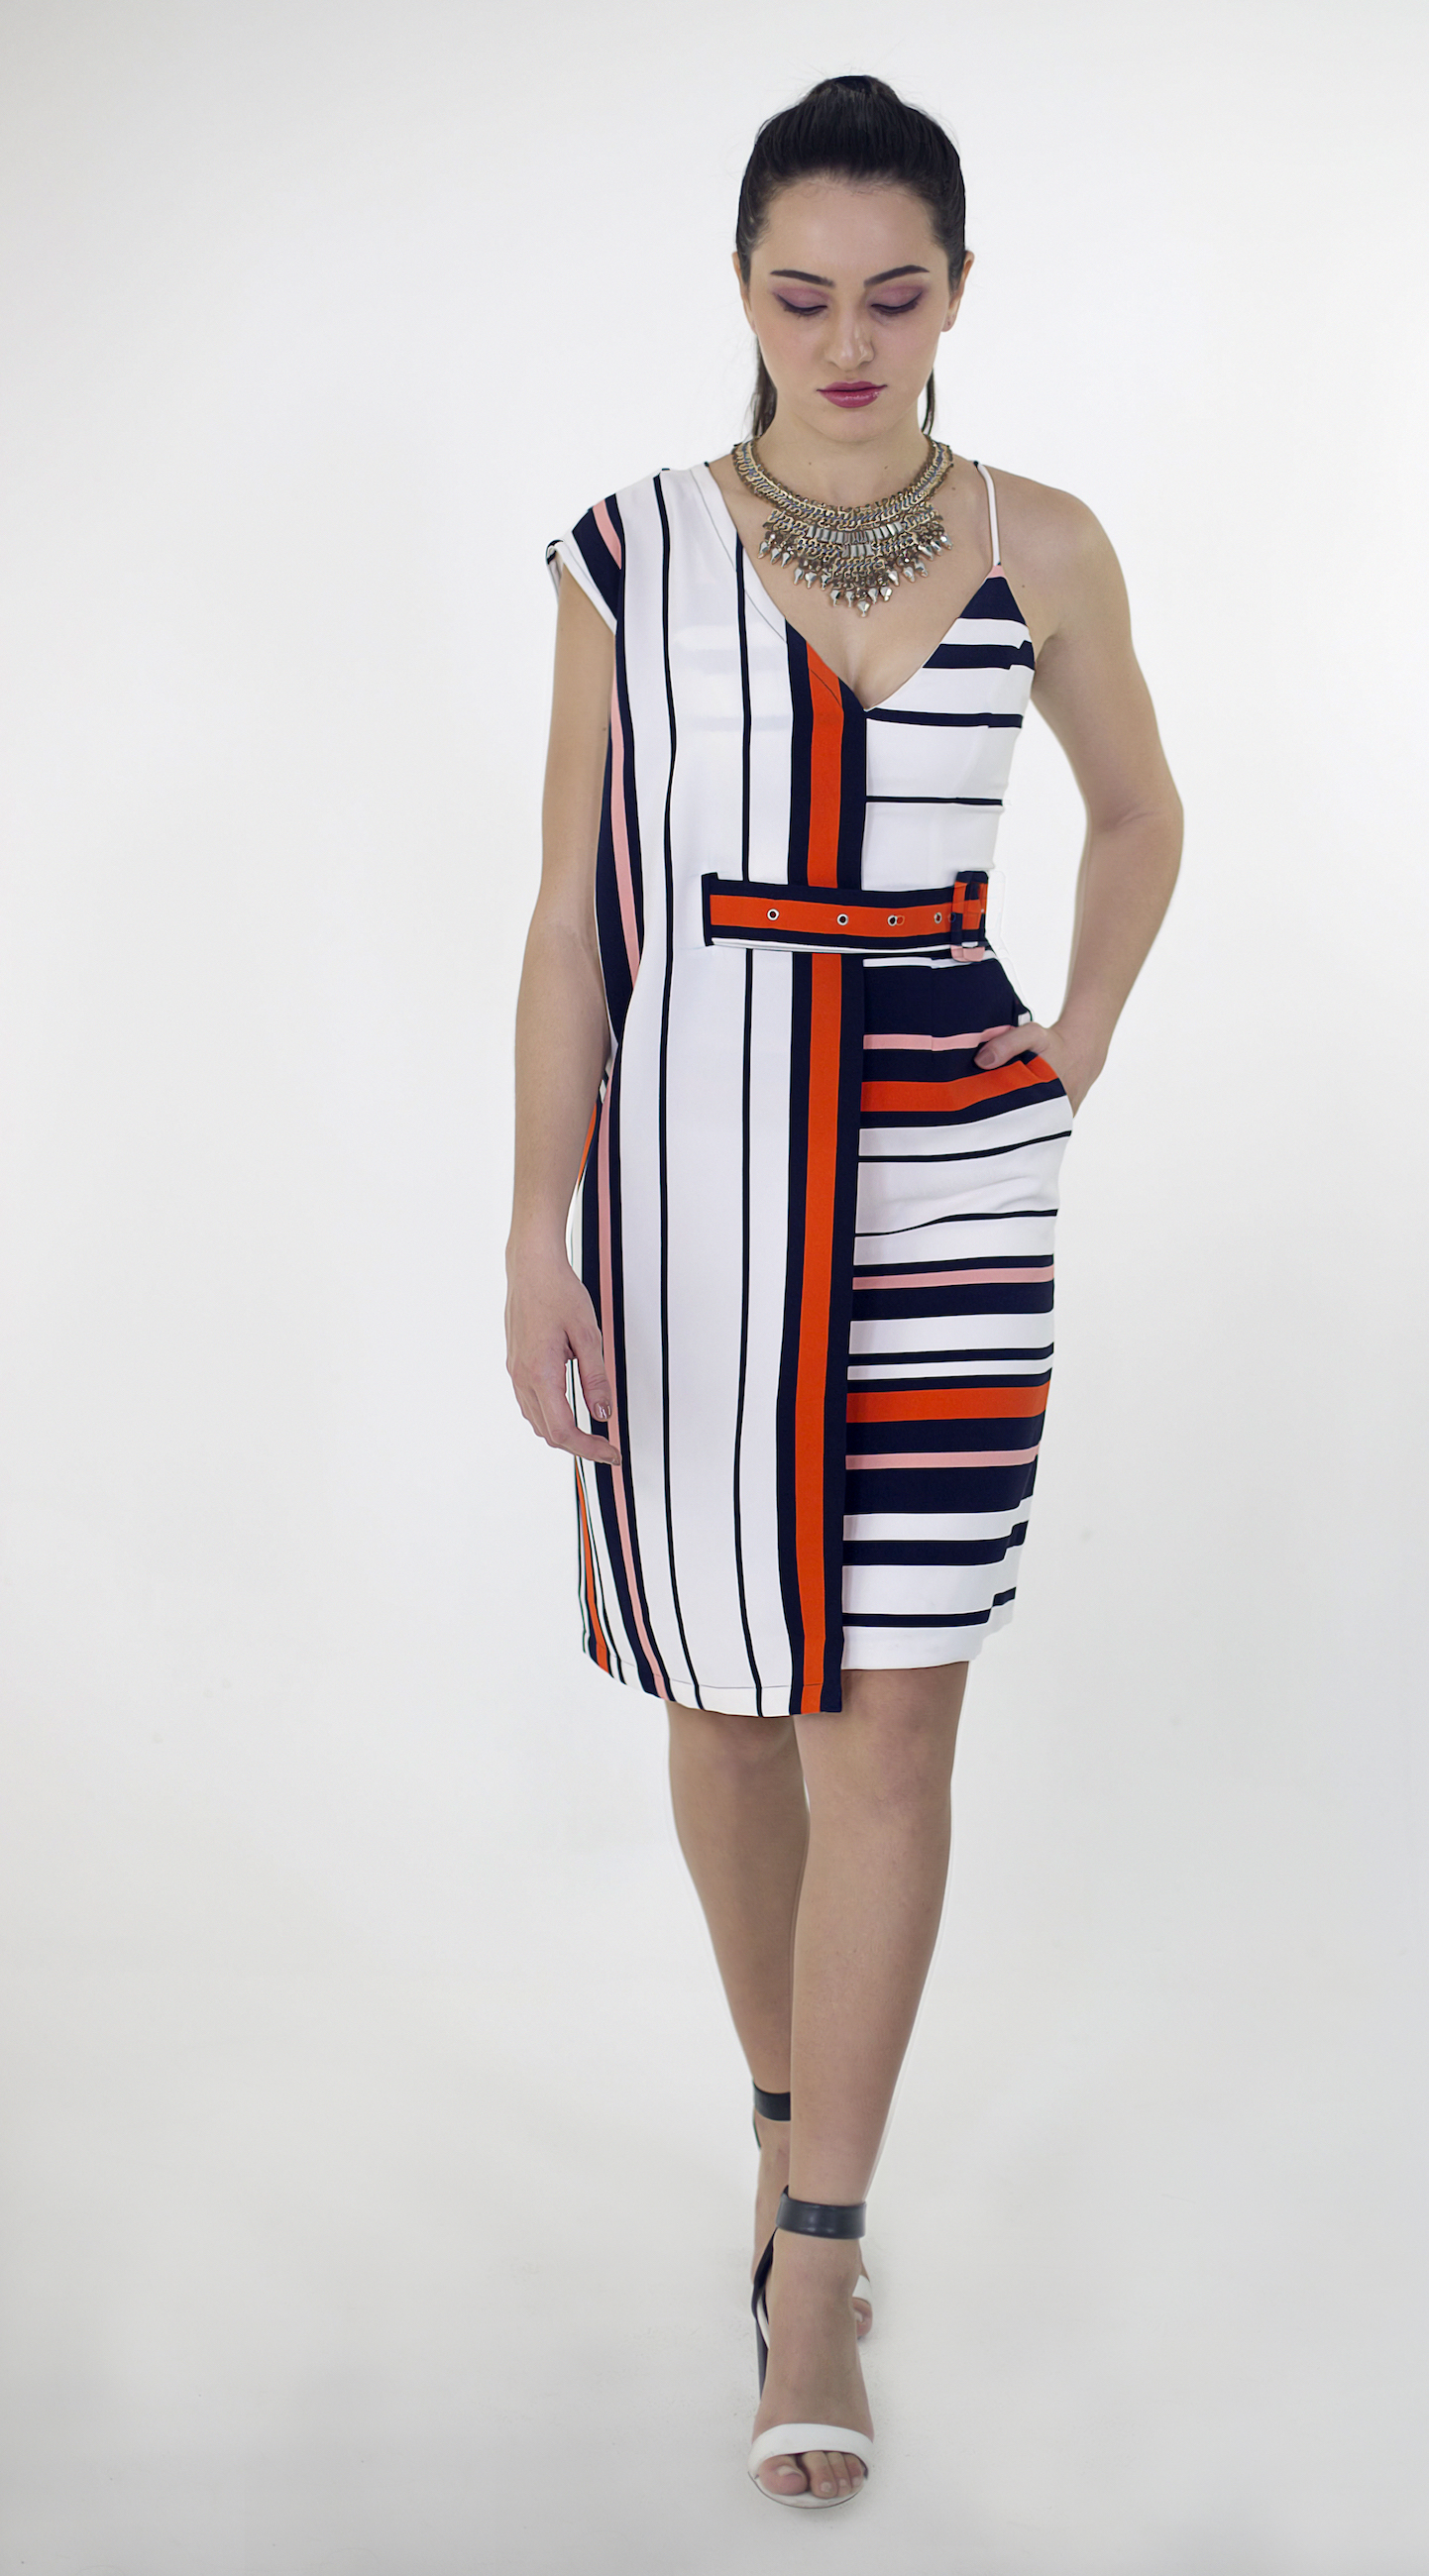 asymmetric-colorful-striped-dress_5-crop-3mb